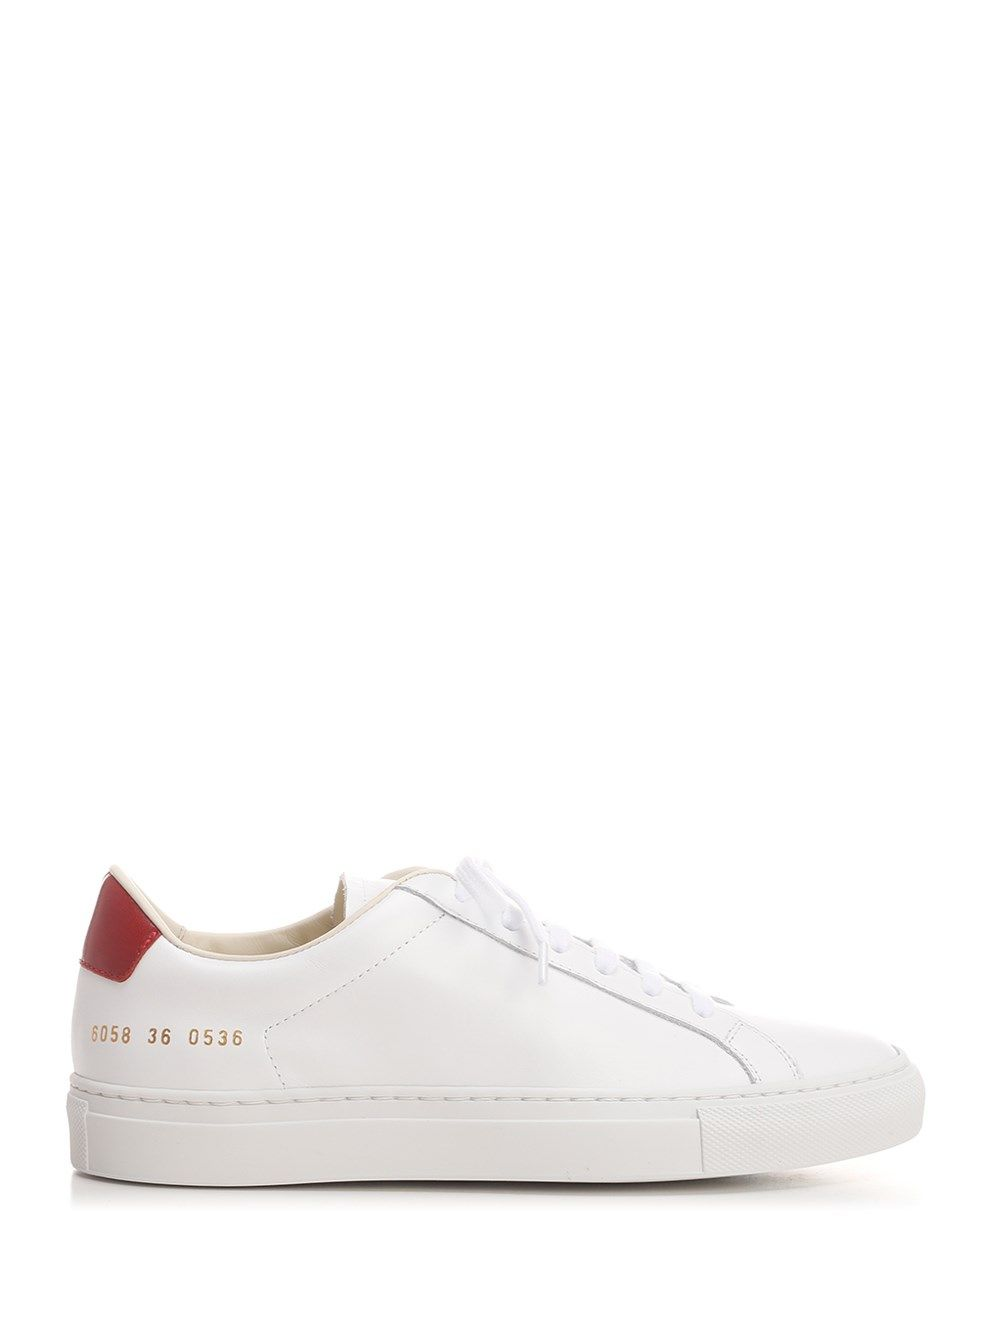 Common Projects Low tops COMMON PROJECTS WOMEN'S 60580536 WHITE OTHER MATERIALS SNEAKERS